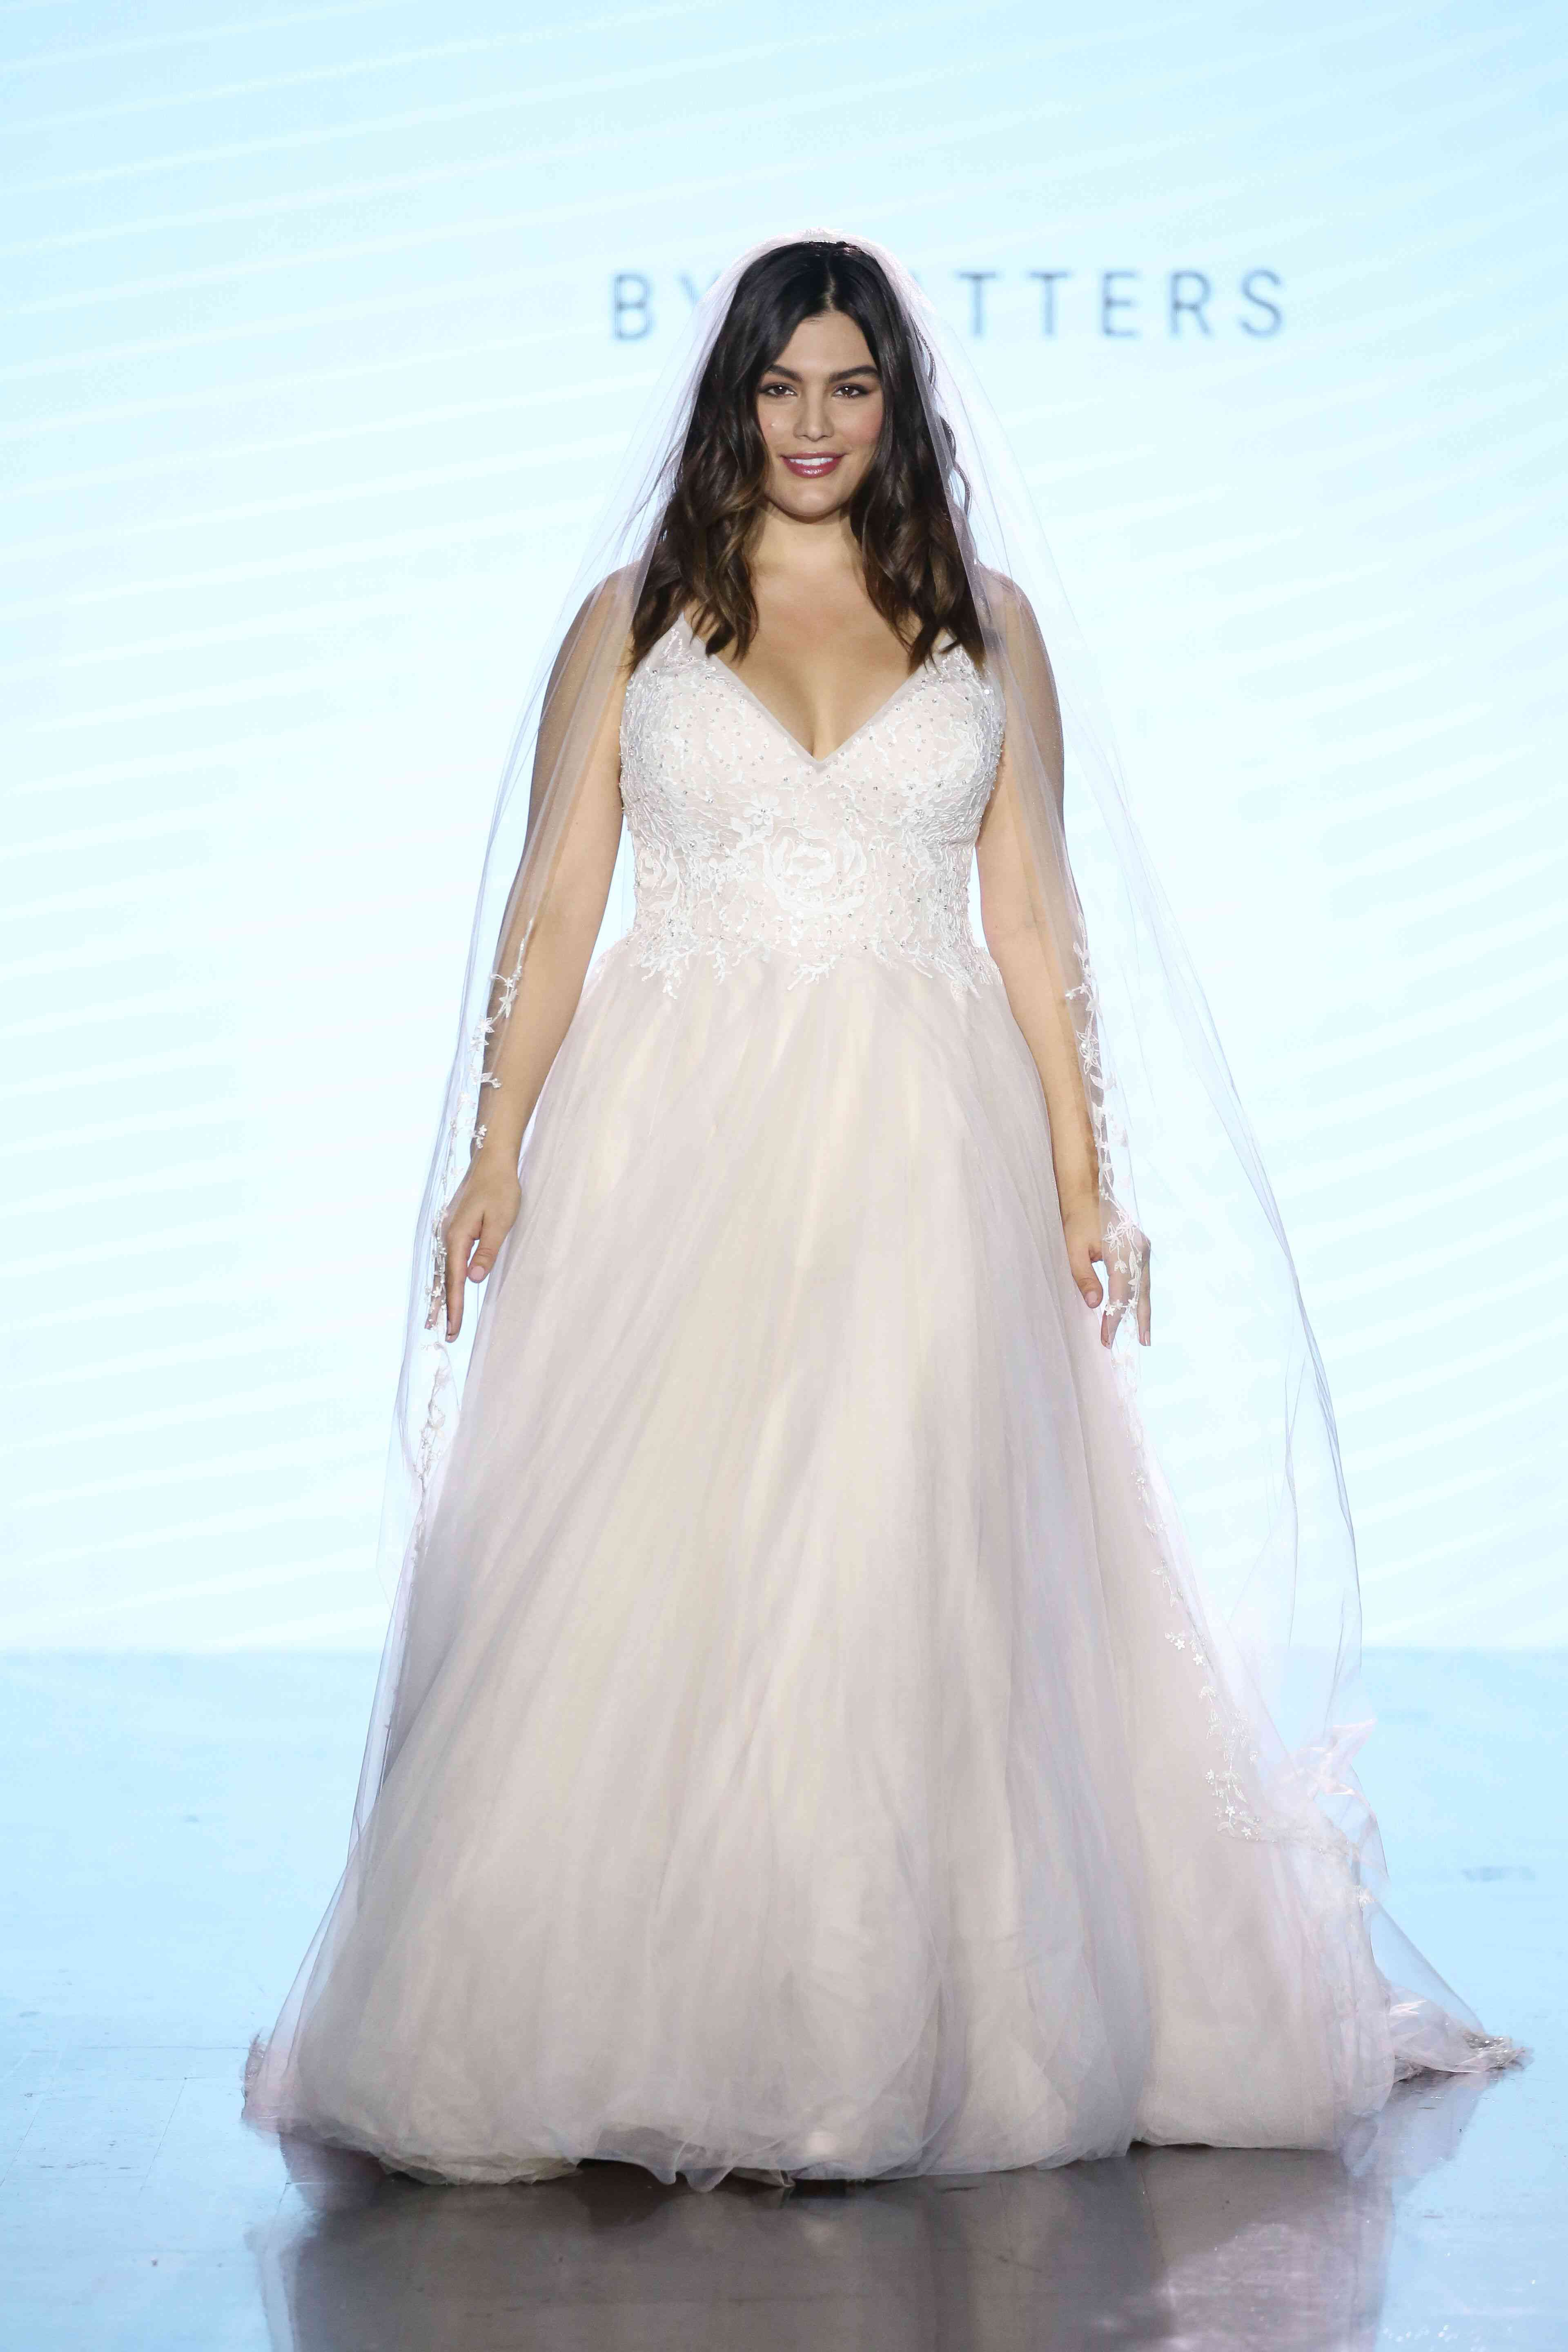 Model in V-neck ballgown with a sequined lace bodice and a tulle skirt